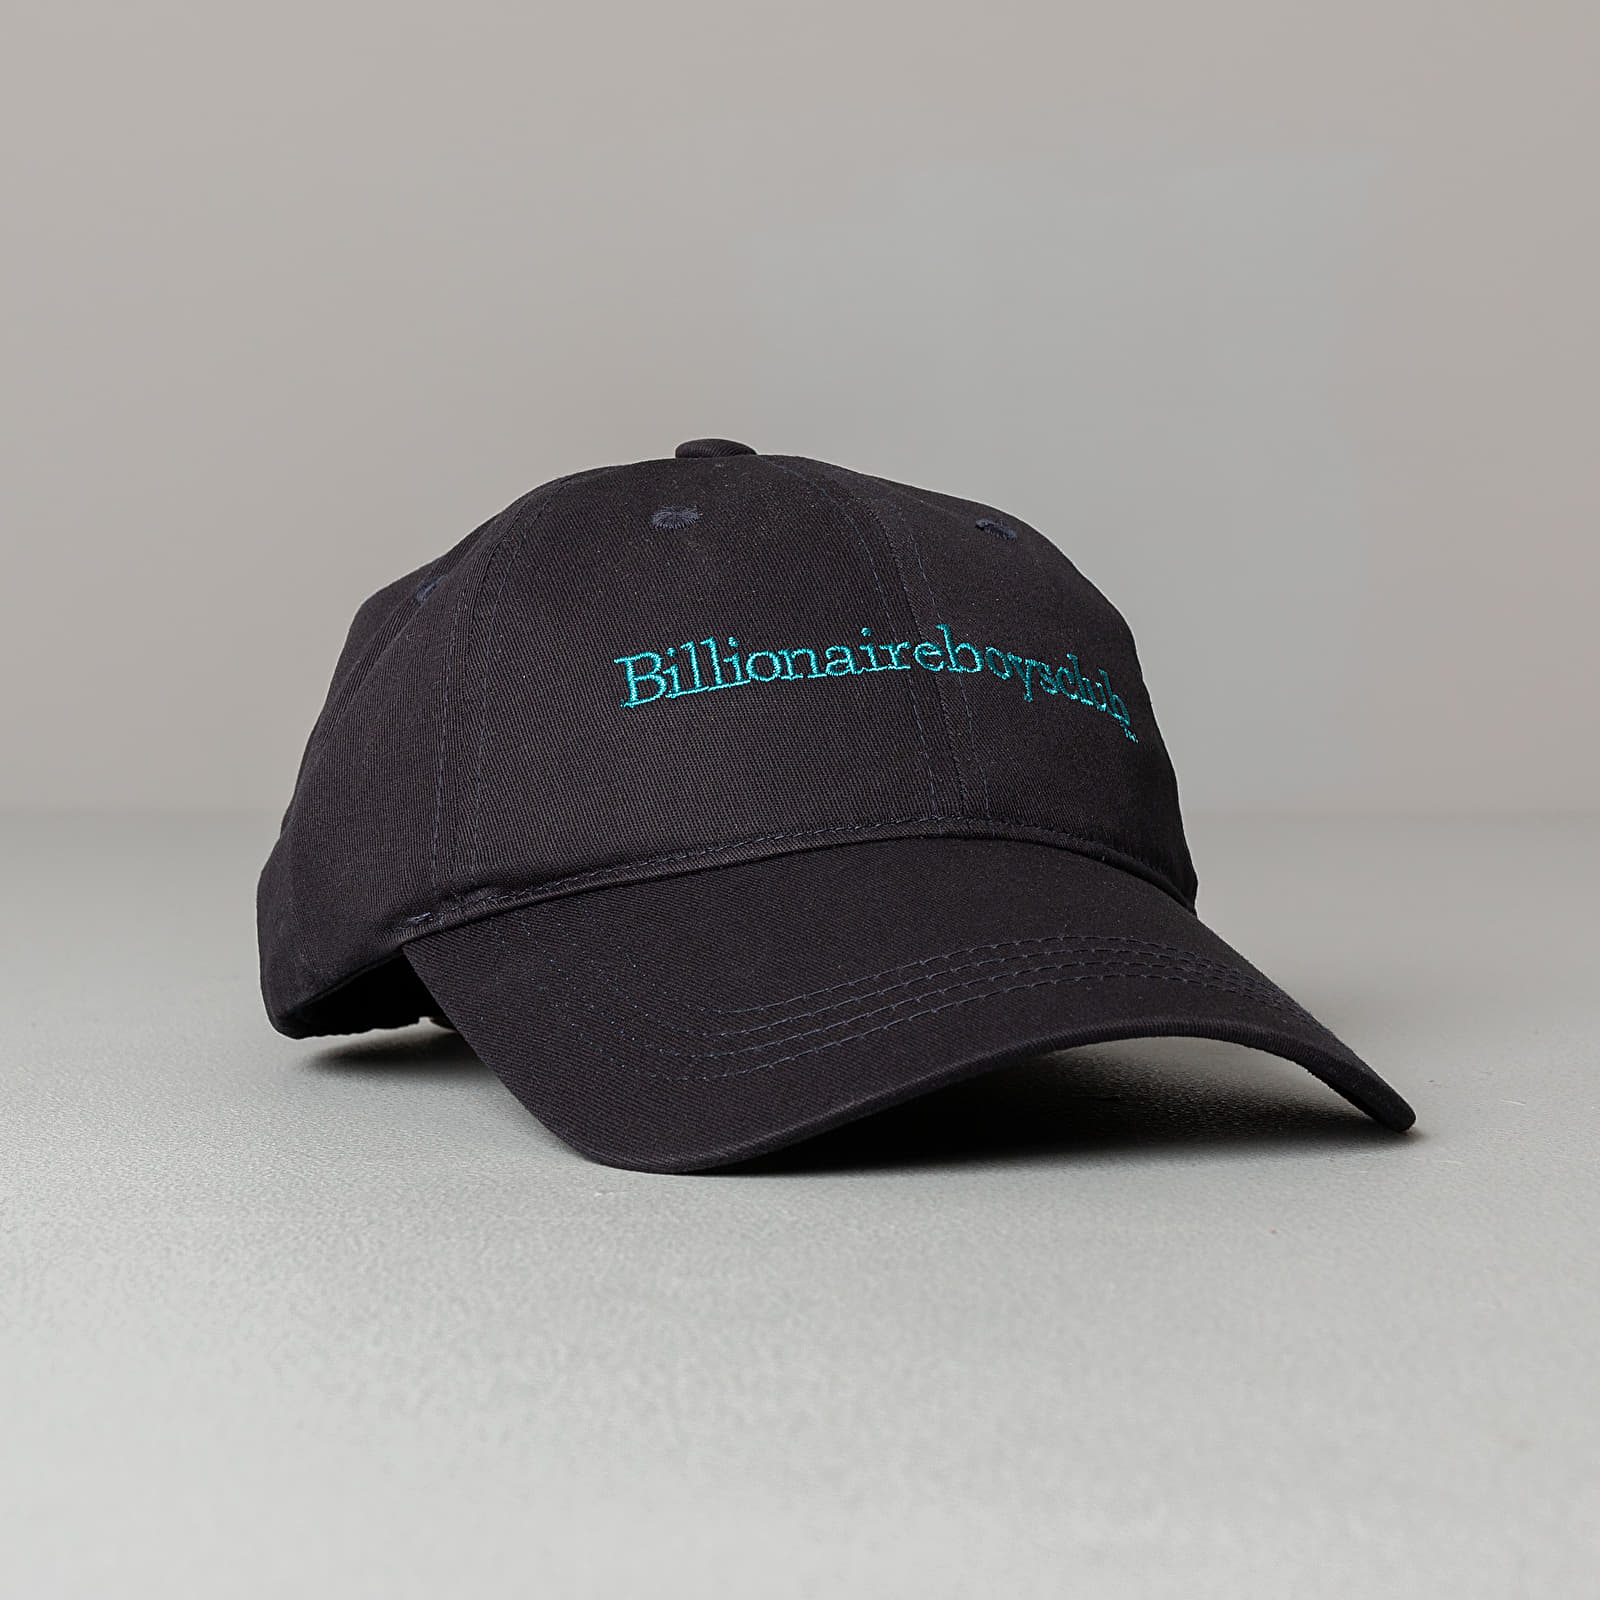 Billionaire Boys Club Embroidered Curved Visor Hat